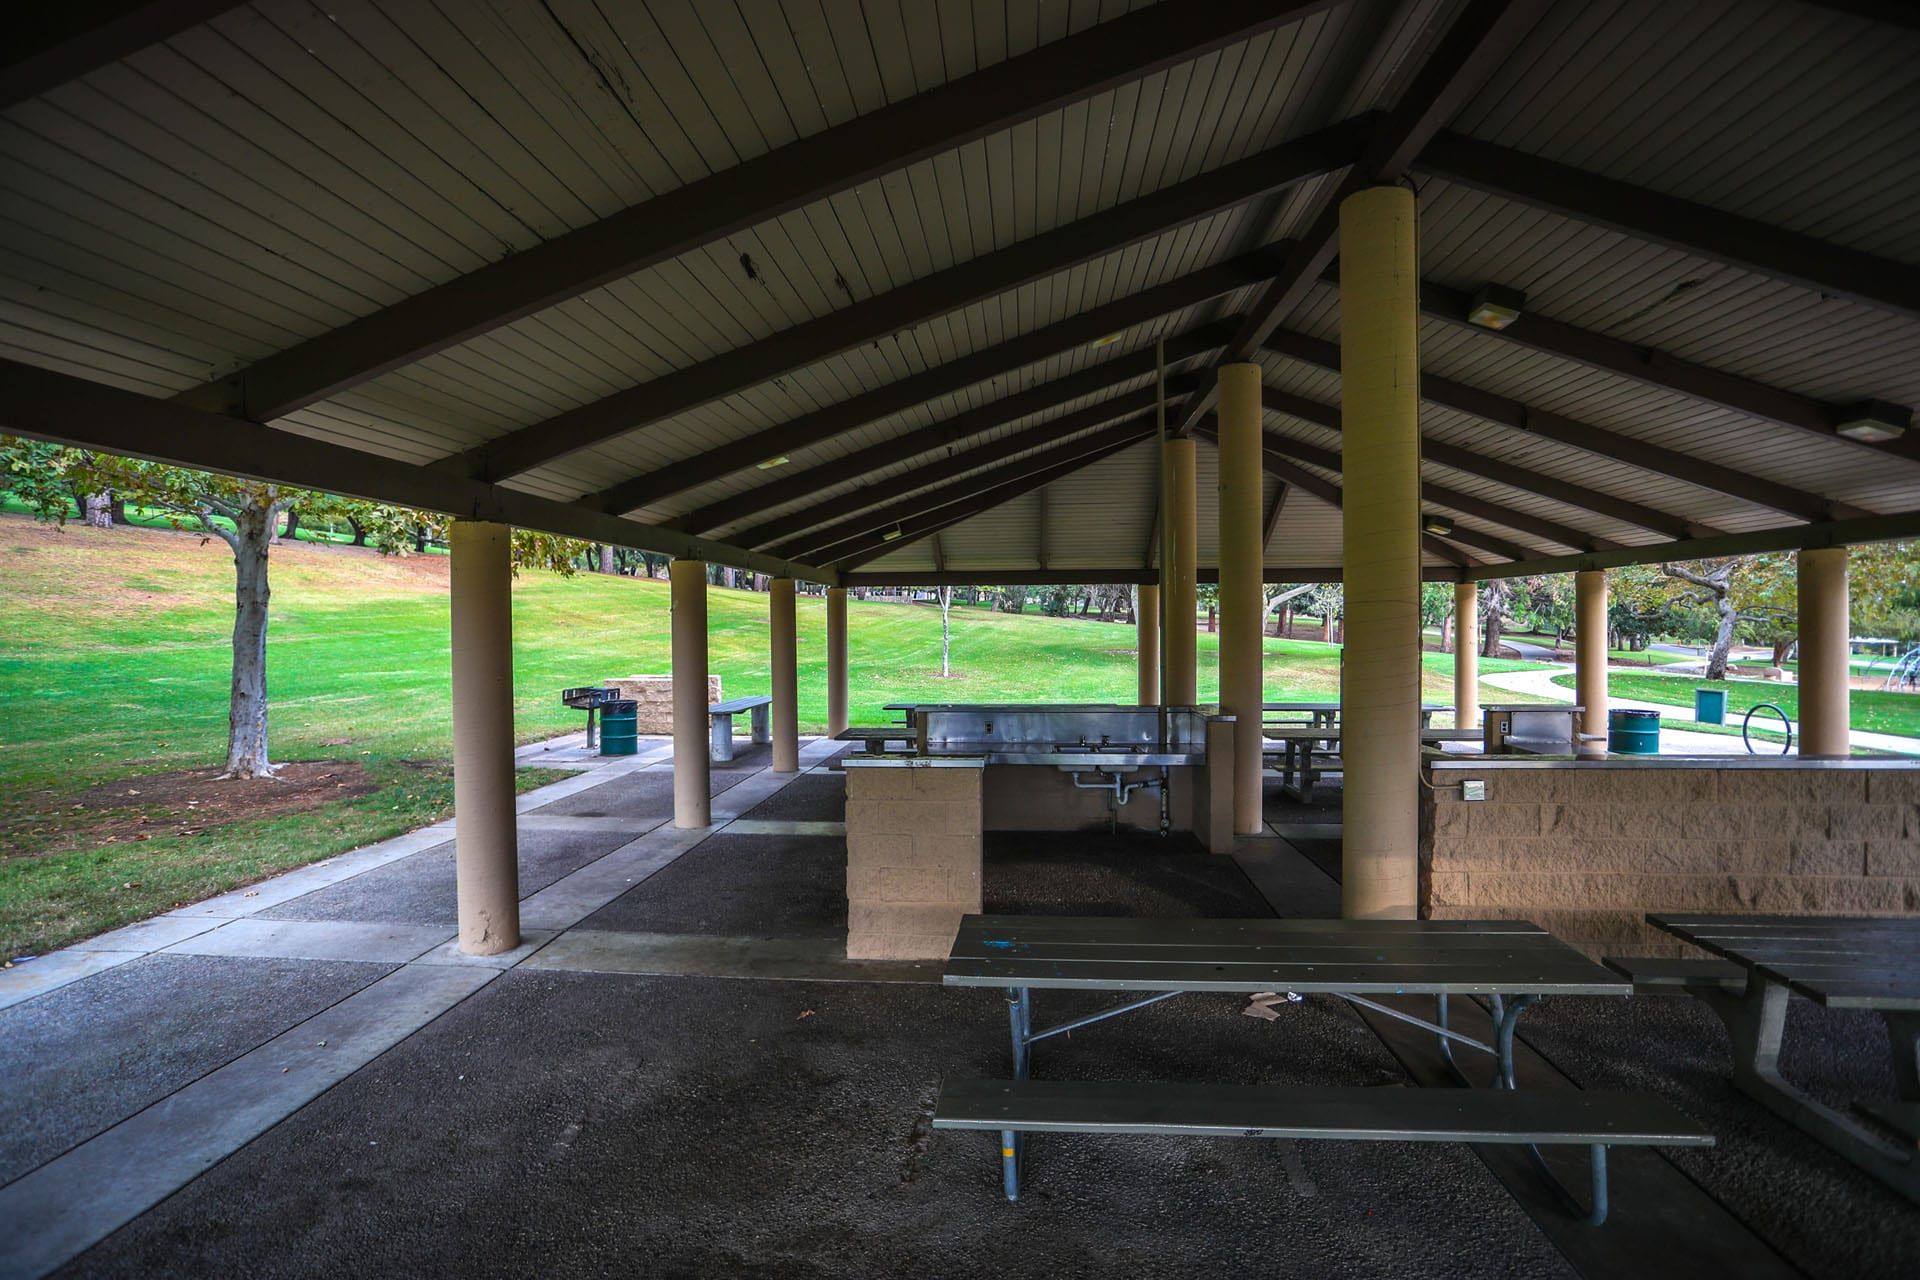 Picnic tables and kitchen area under an awning. BBQ grills just outside